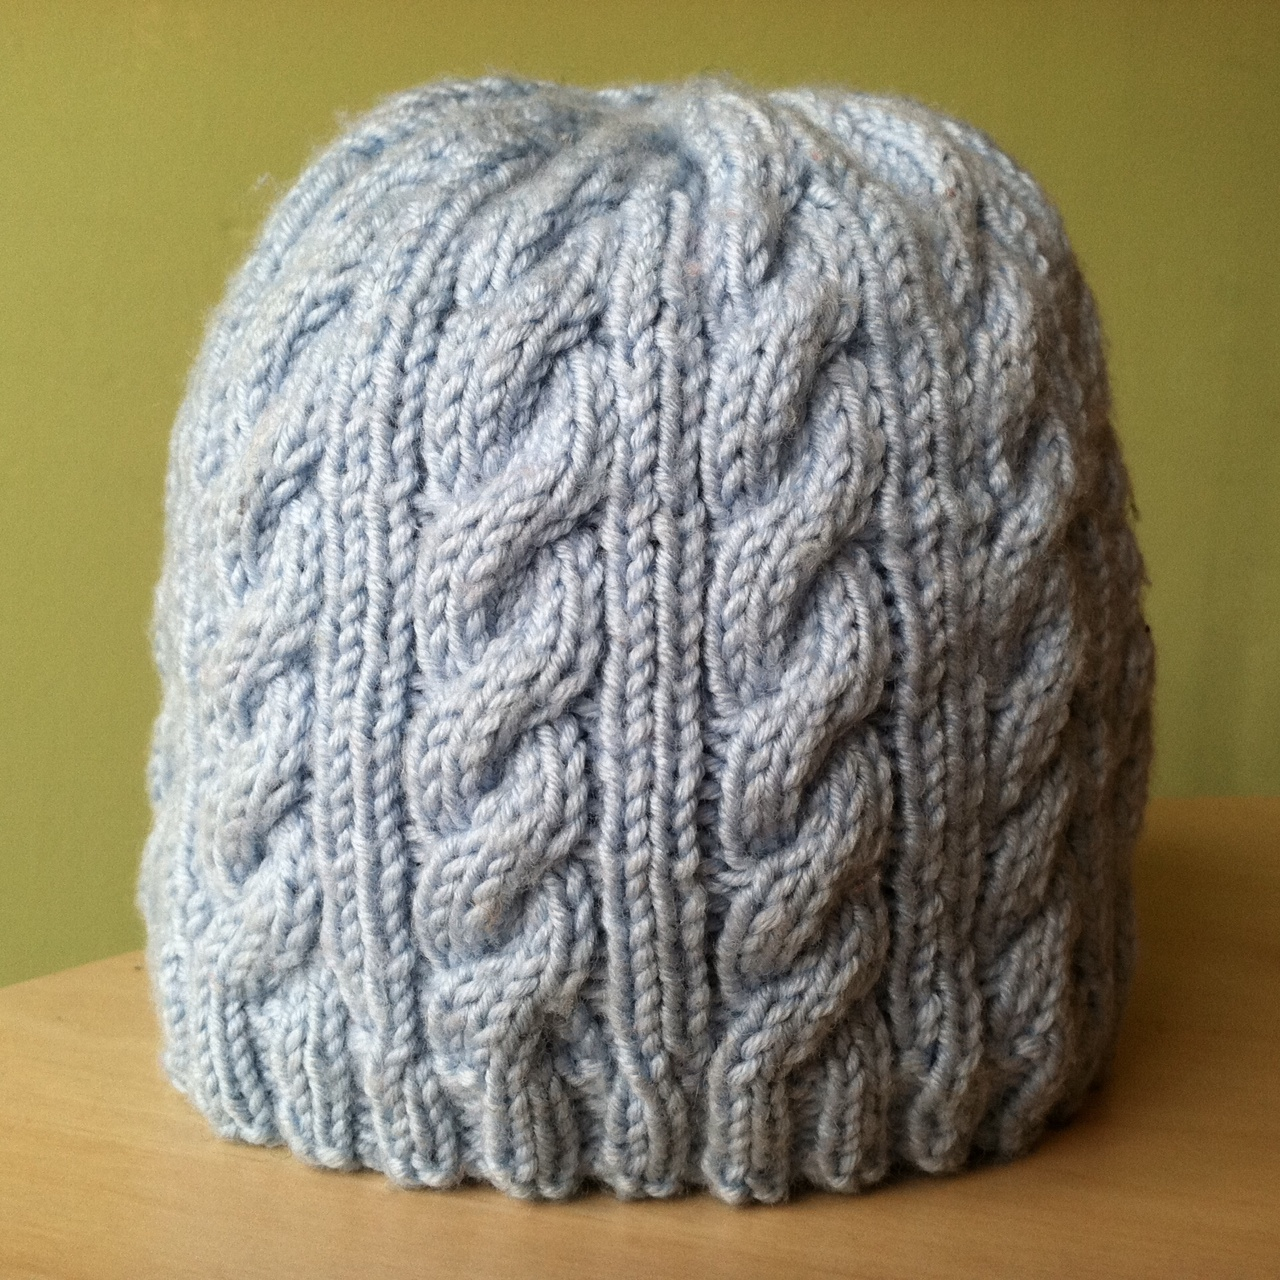 The Yarn Garden Blog  Upcoming Class  Easy Baby Cable Knit Hat b17c76de00b